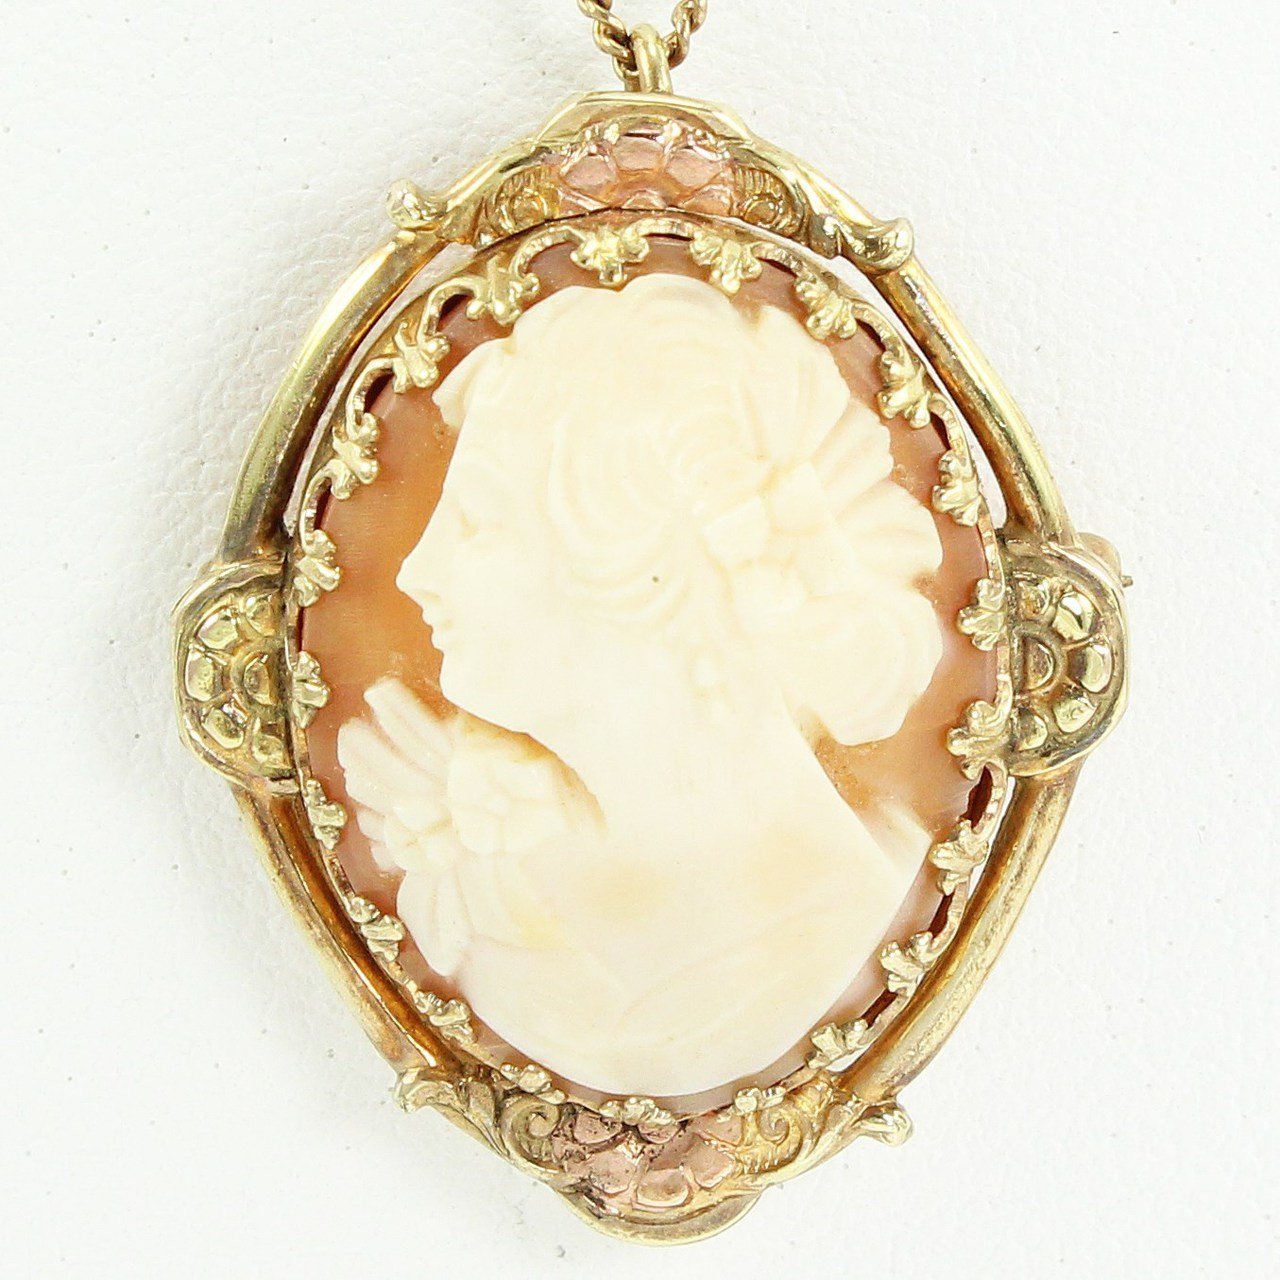 cameo brooch this is an image of the antique carved cameo pendant brooch. ztxzvrk